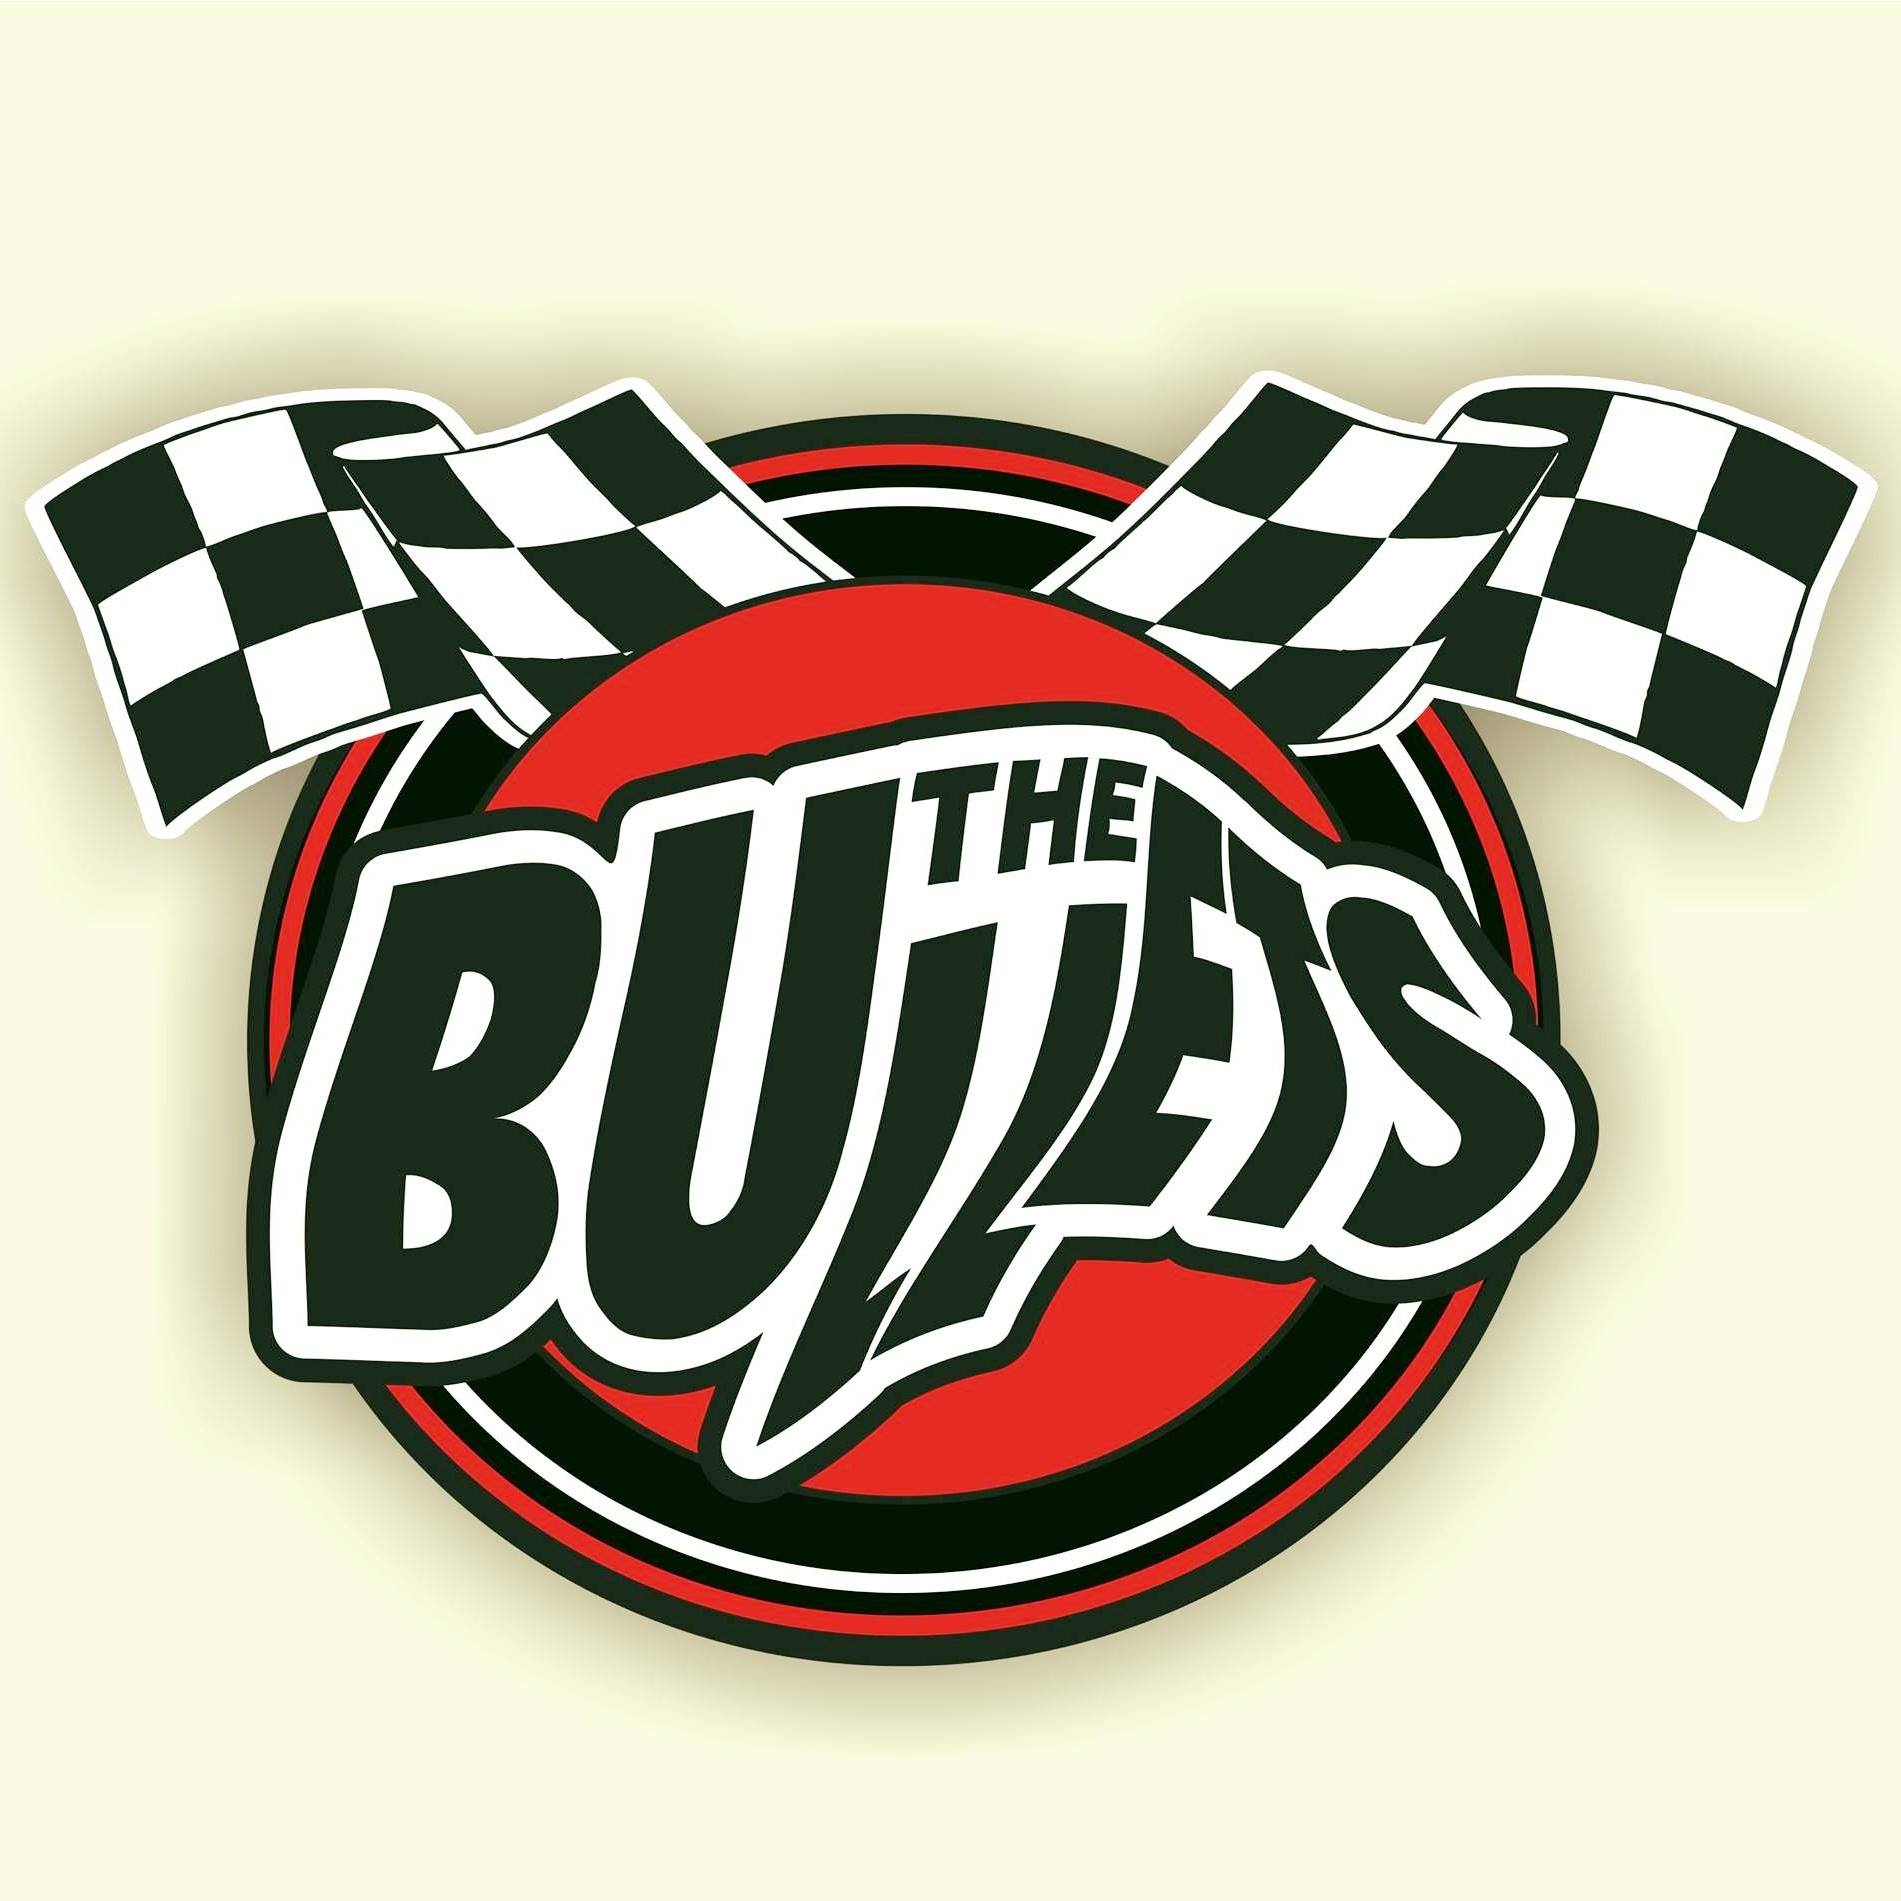 the bullets logo